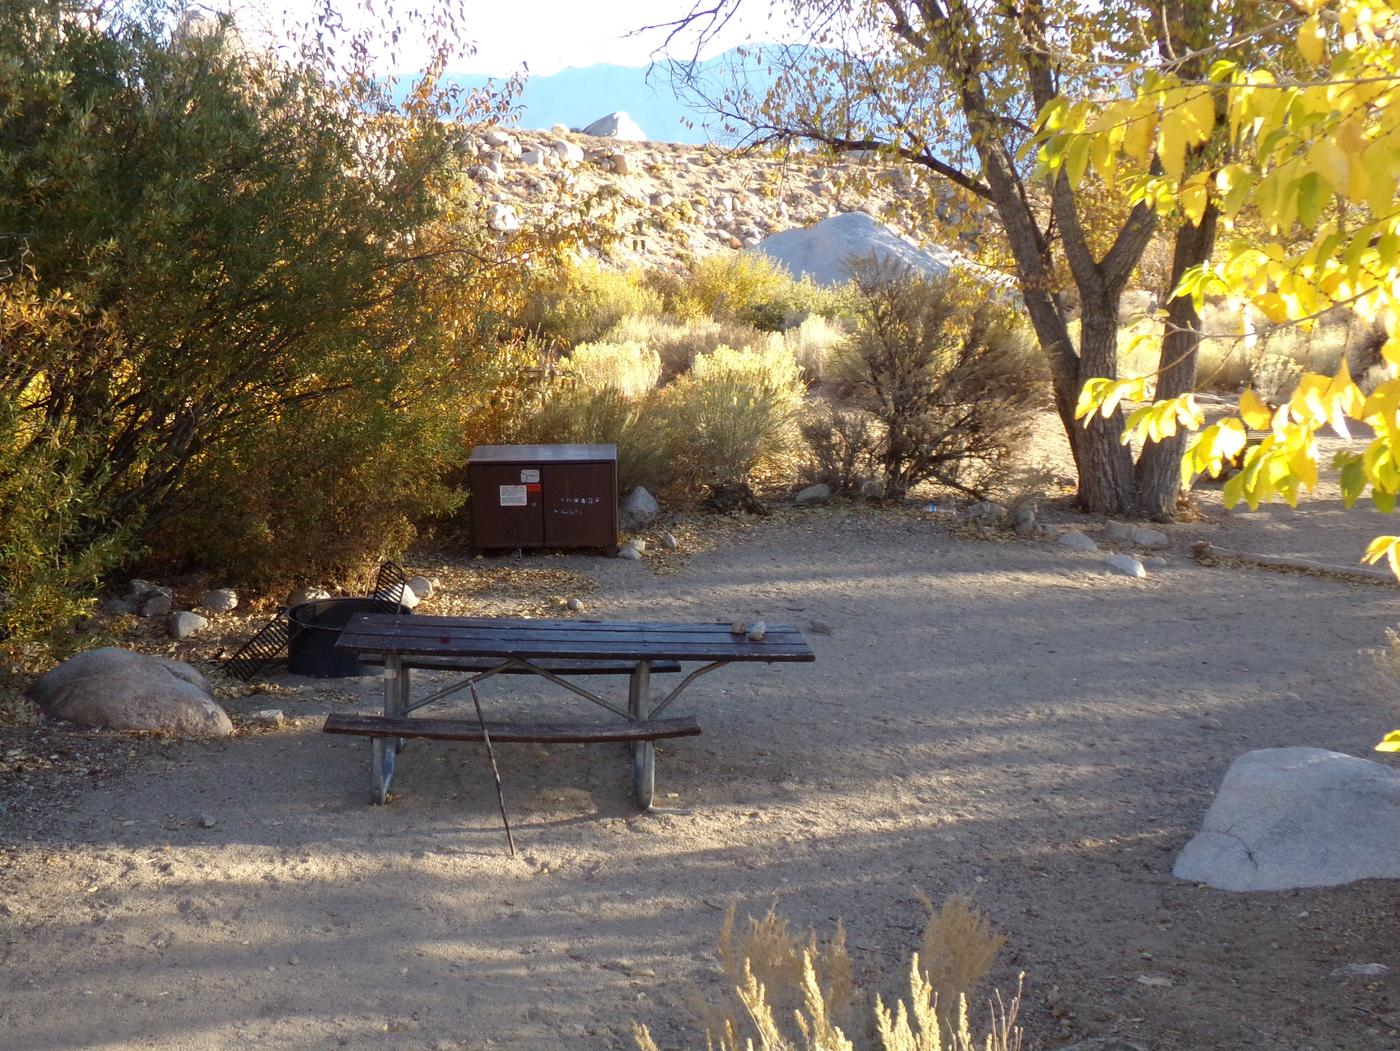 Lone Pine Campground site #14 featuring picnic area, food storage, and fire pit.